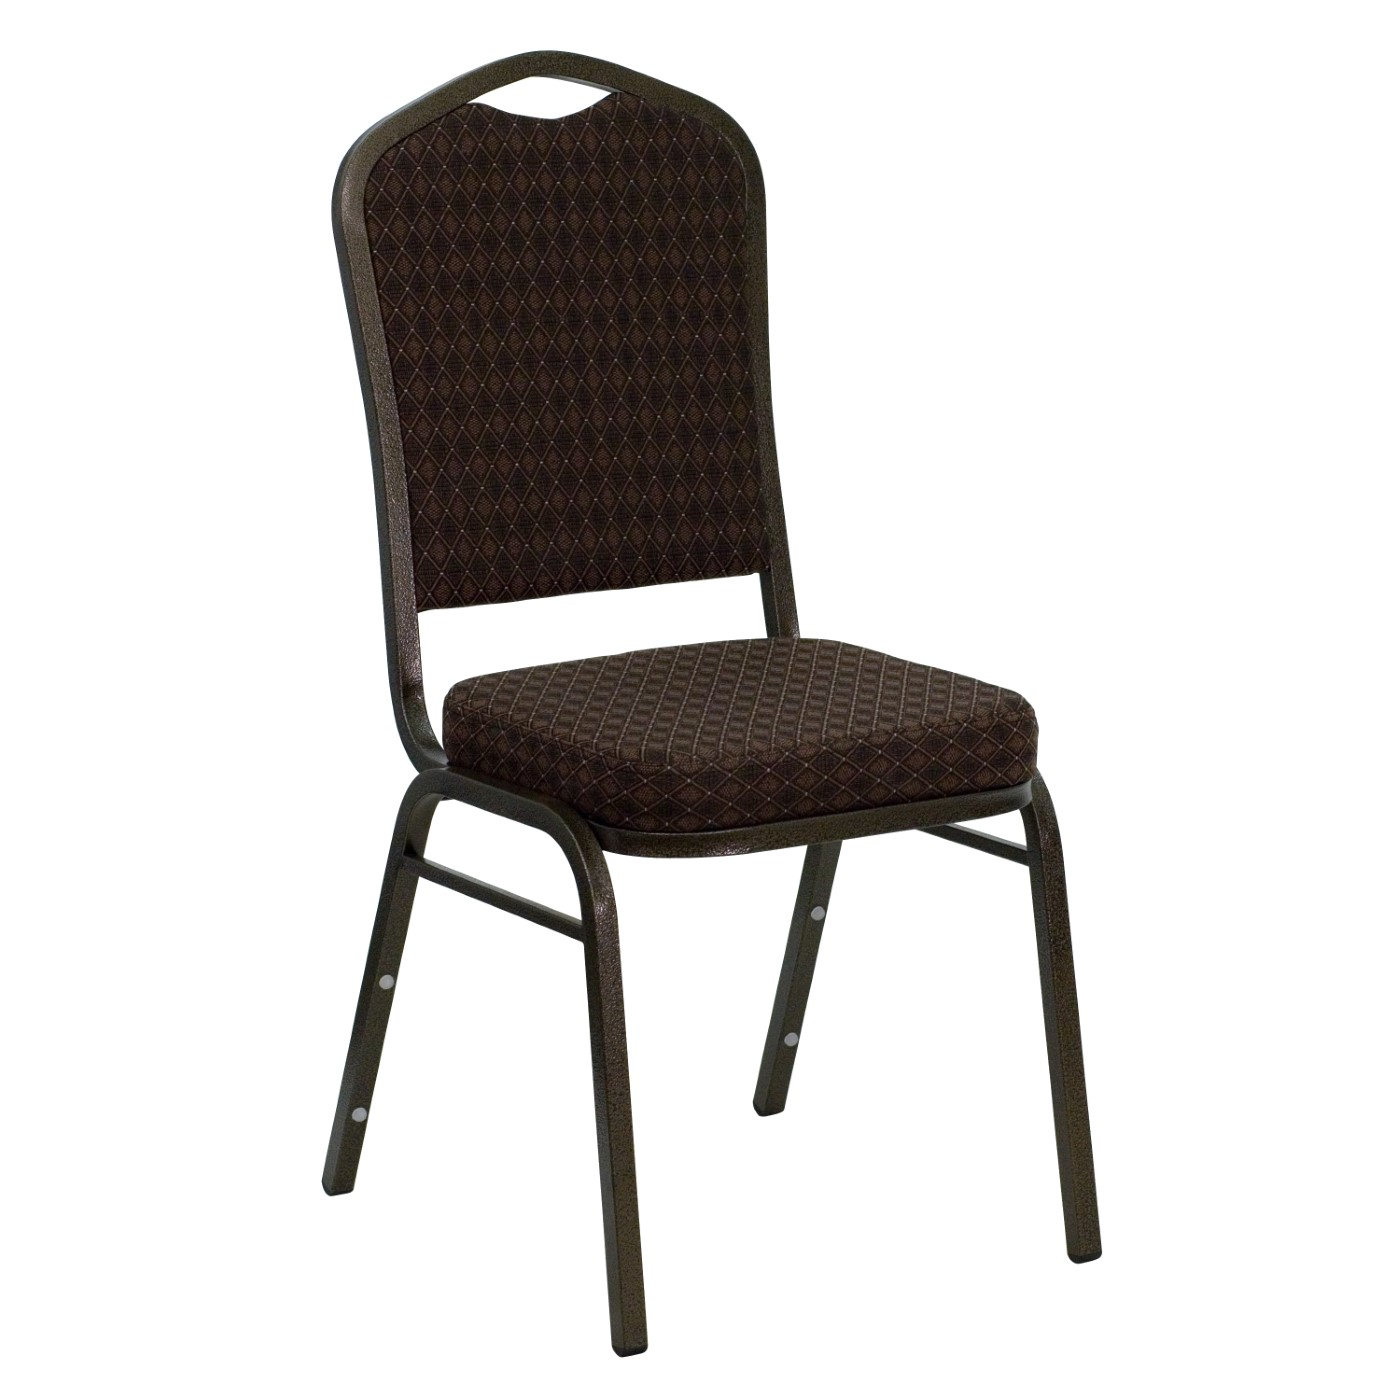 TOUGH ENOUGH Series Crown Back Stacking Banquet Chair in Brown Patterned Fabric - Gold Vein Frame